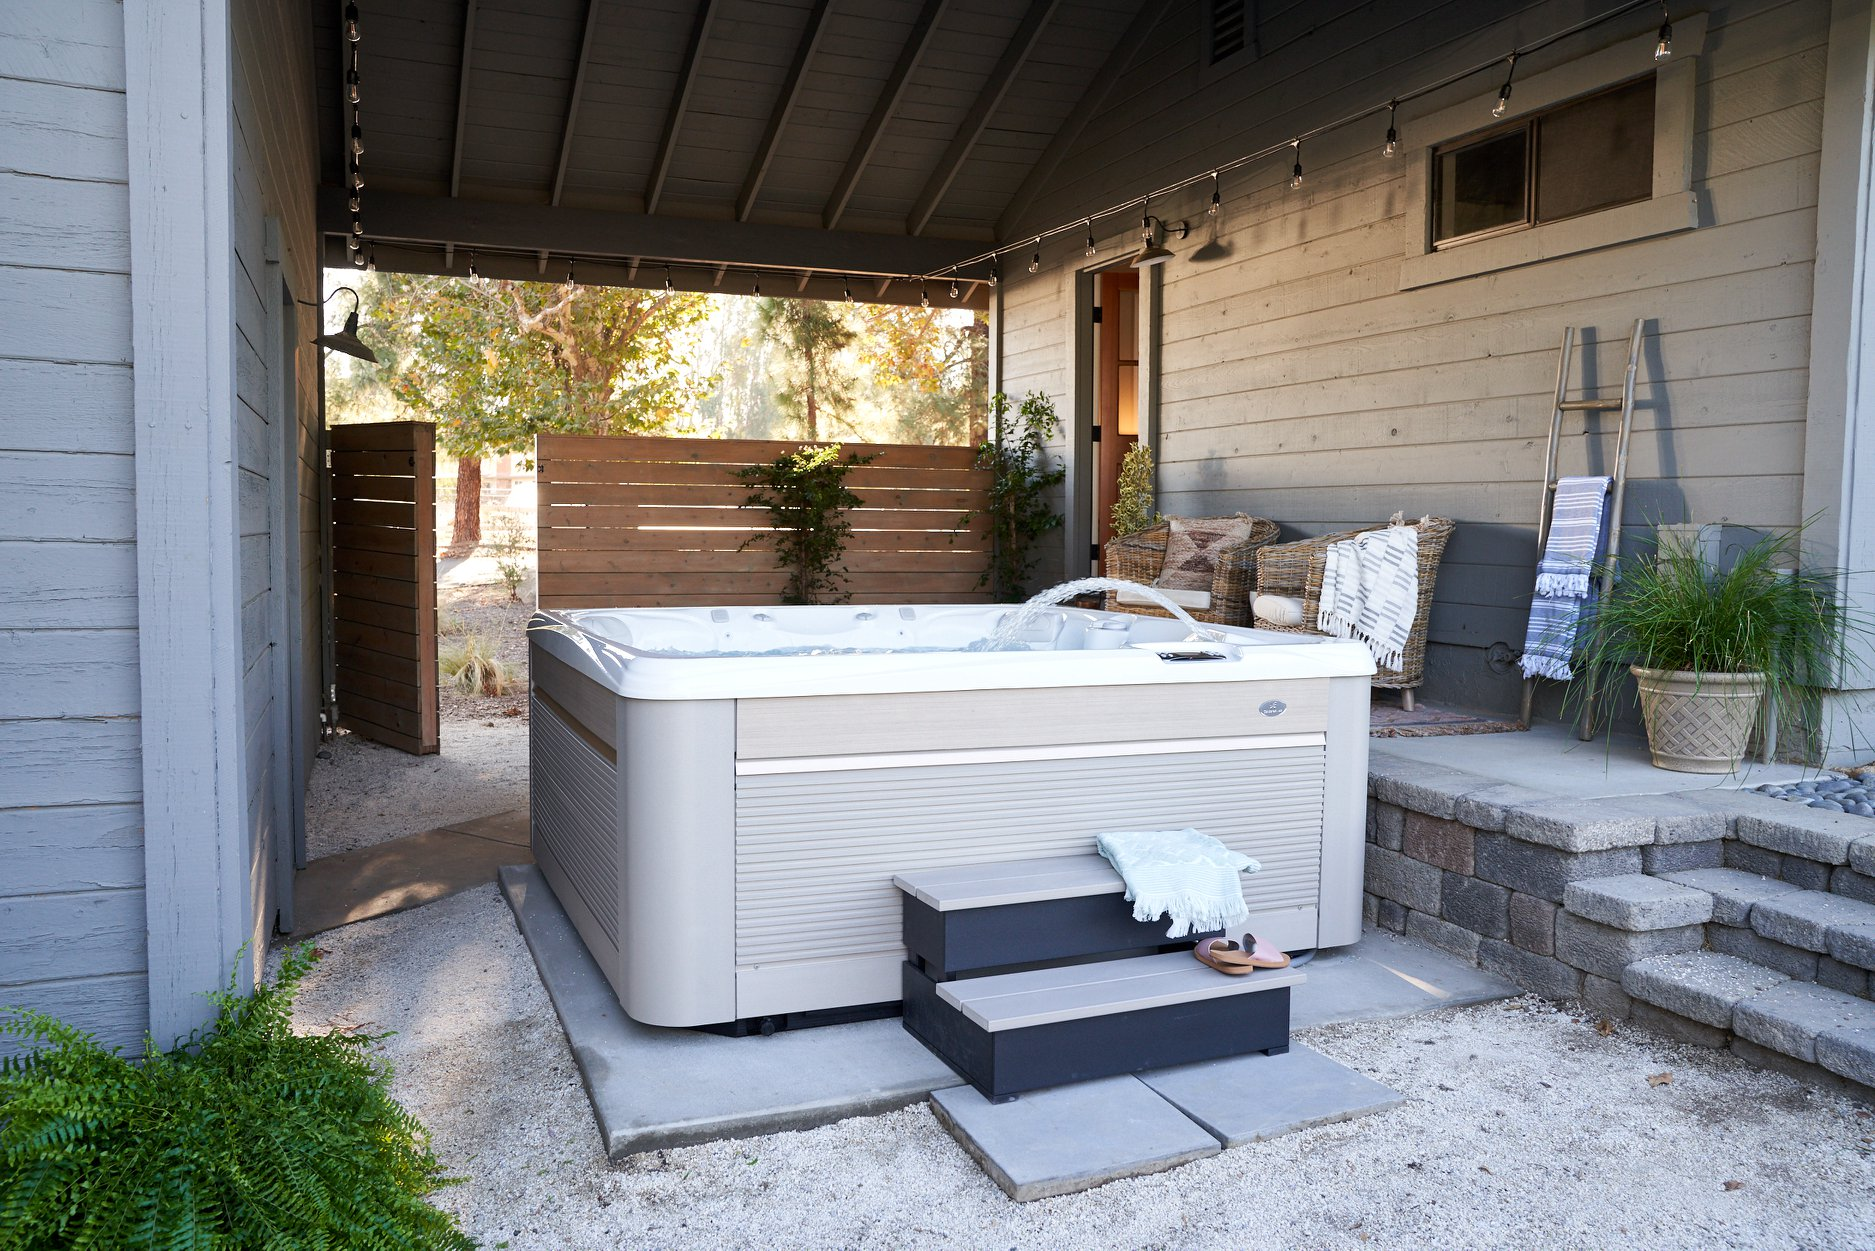 caldera hot tub installation in Los Angeles, CA